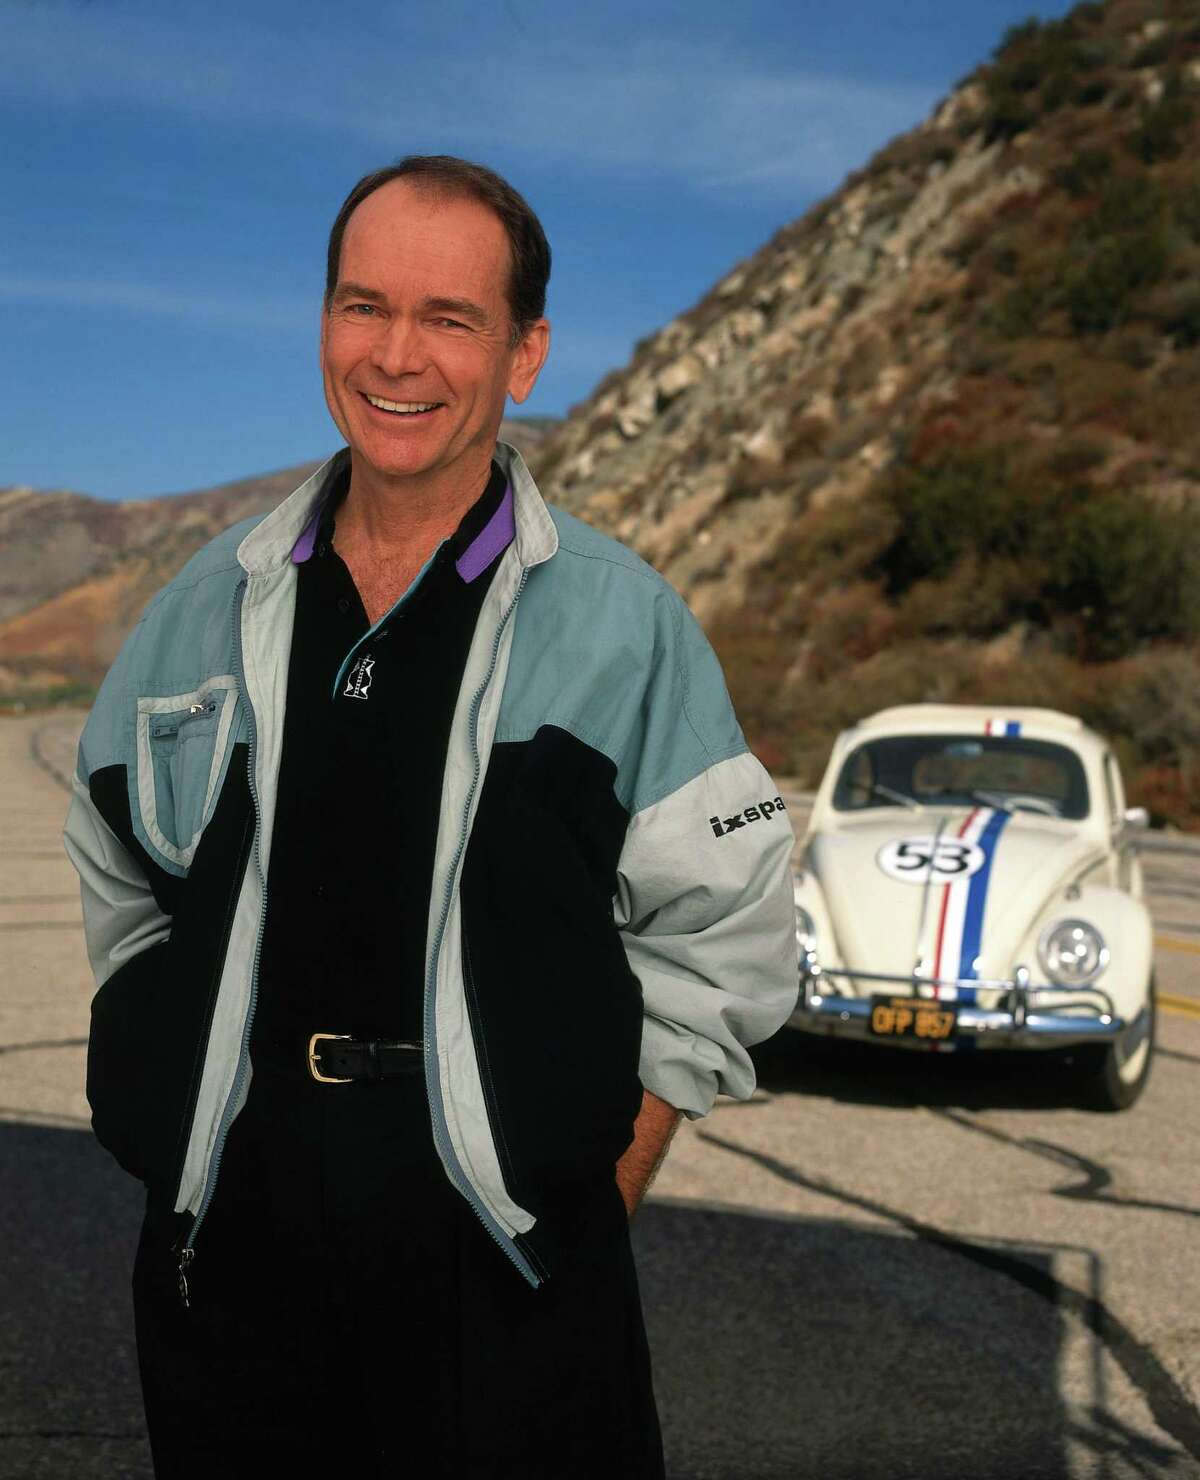 """This 1997 photo provided by ABC shows actor Dean Jones, who starred in the Disney classic film """"The Love Bug"""" and the later television remake of the film. Jones, whose boyish good looks and all-American manner made him Disney's favorite young actor for such lighthearted films as """"That Darn Cat!"""" and """"The Love Bug,"""" has died of Parkinson's disease. He was 84."""